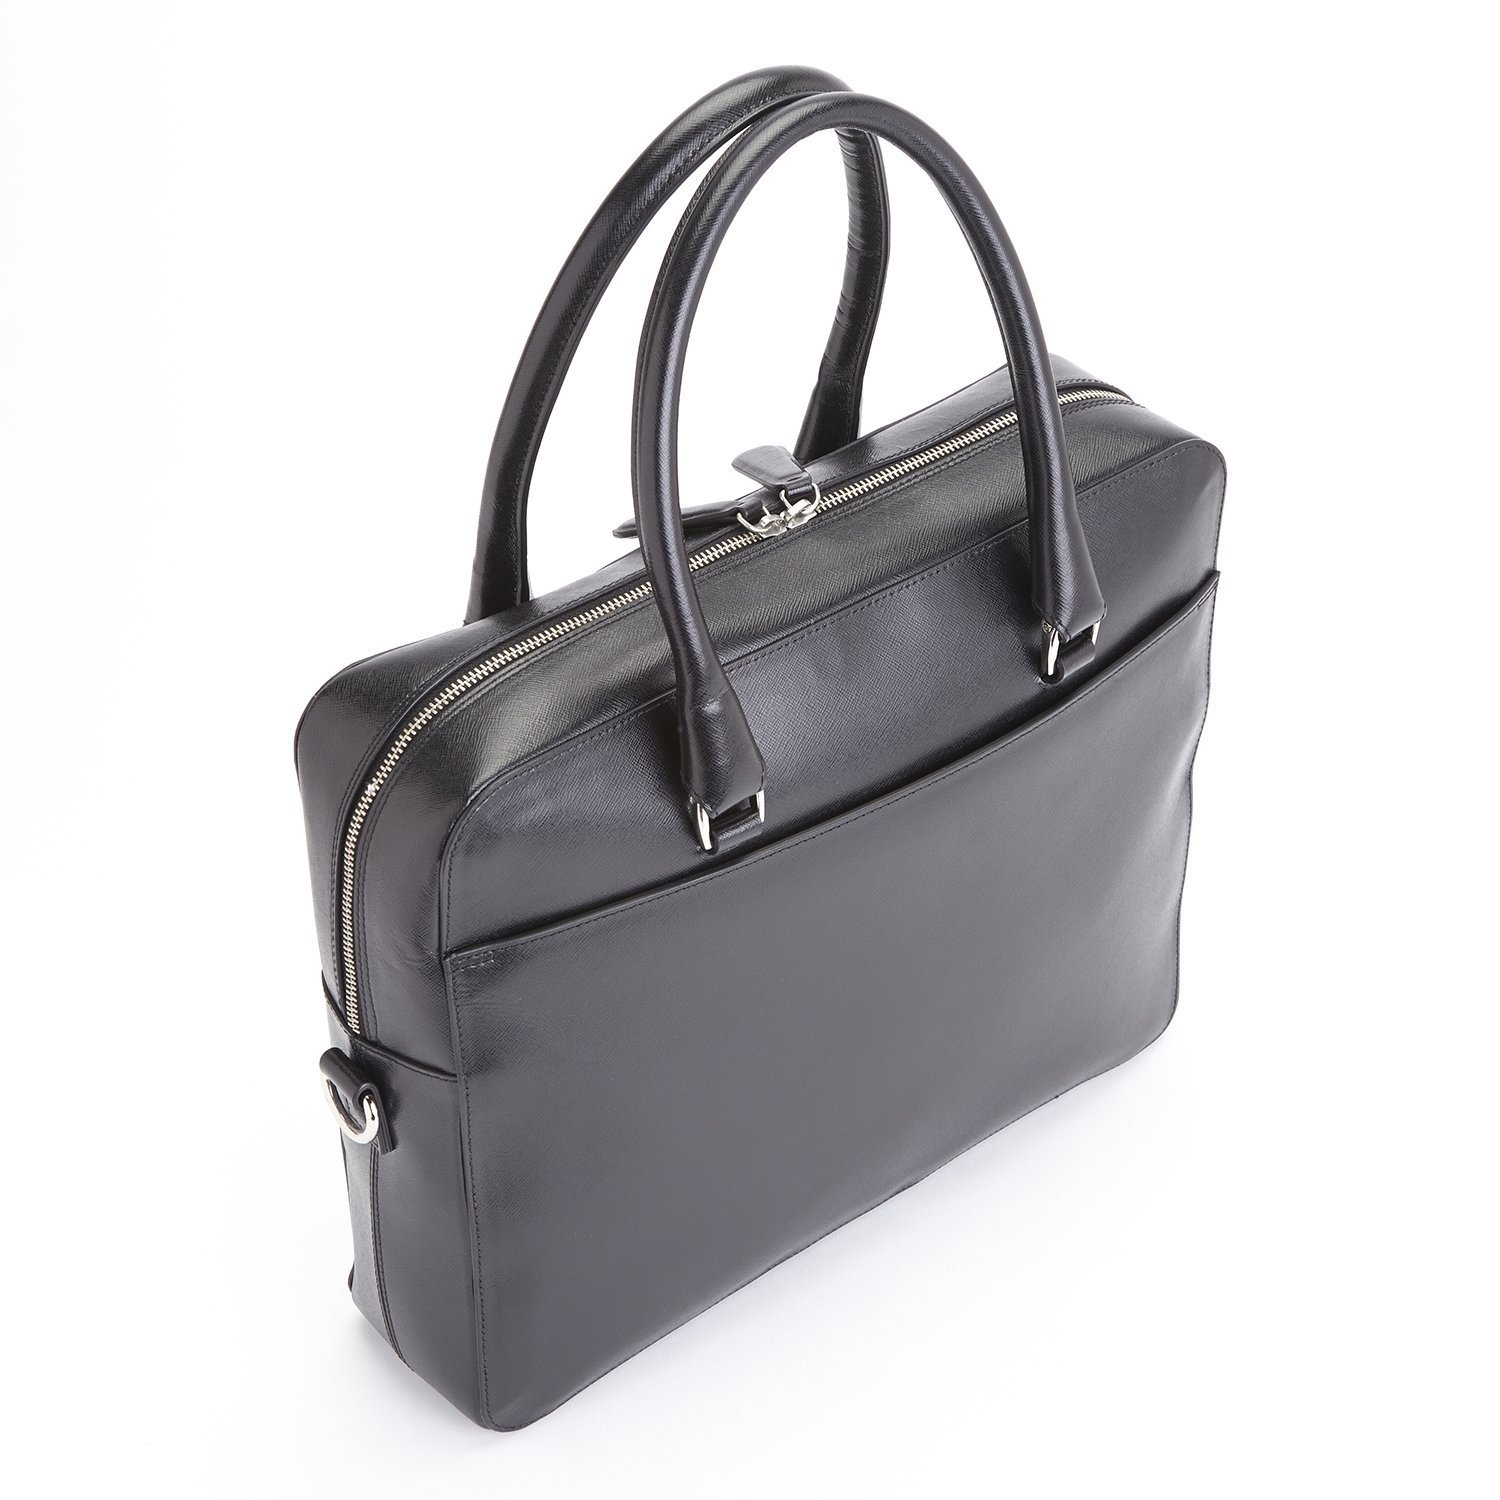 Royce Leather RFID Blocking Travel Briefcase in Italian Saffiano Leather